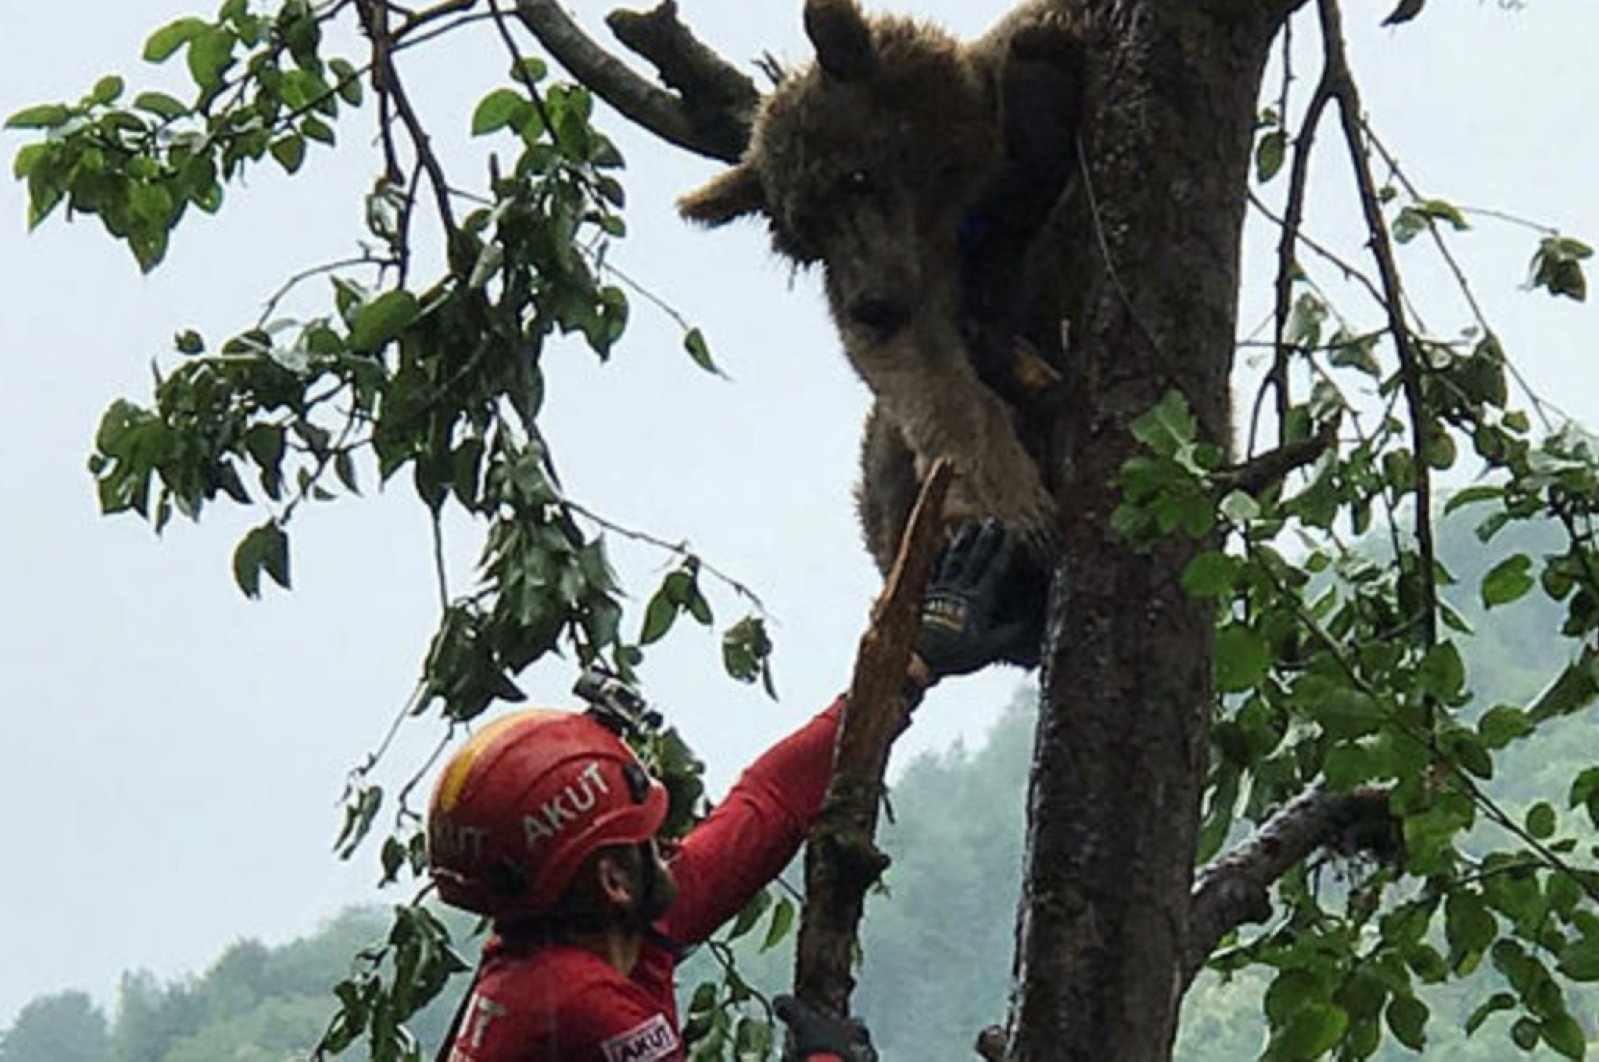 A rescue worker tries to reach the stranded bear, in Rize, Turkey, July 1, 2020. (DHA Photo)